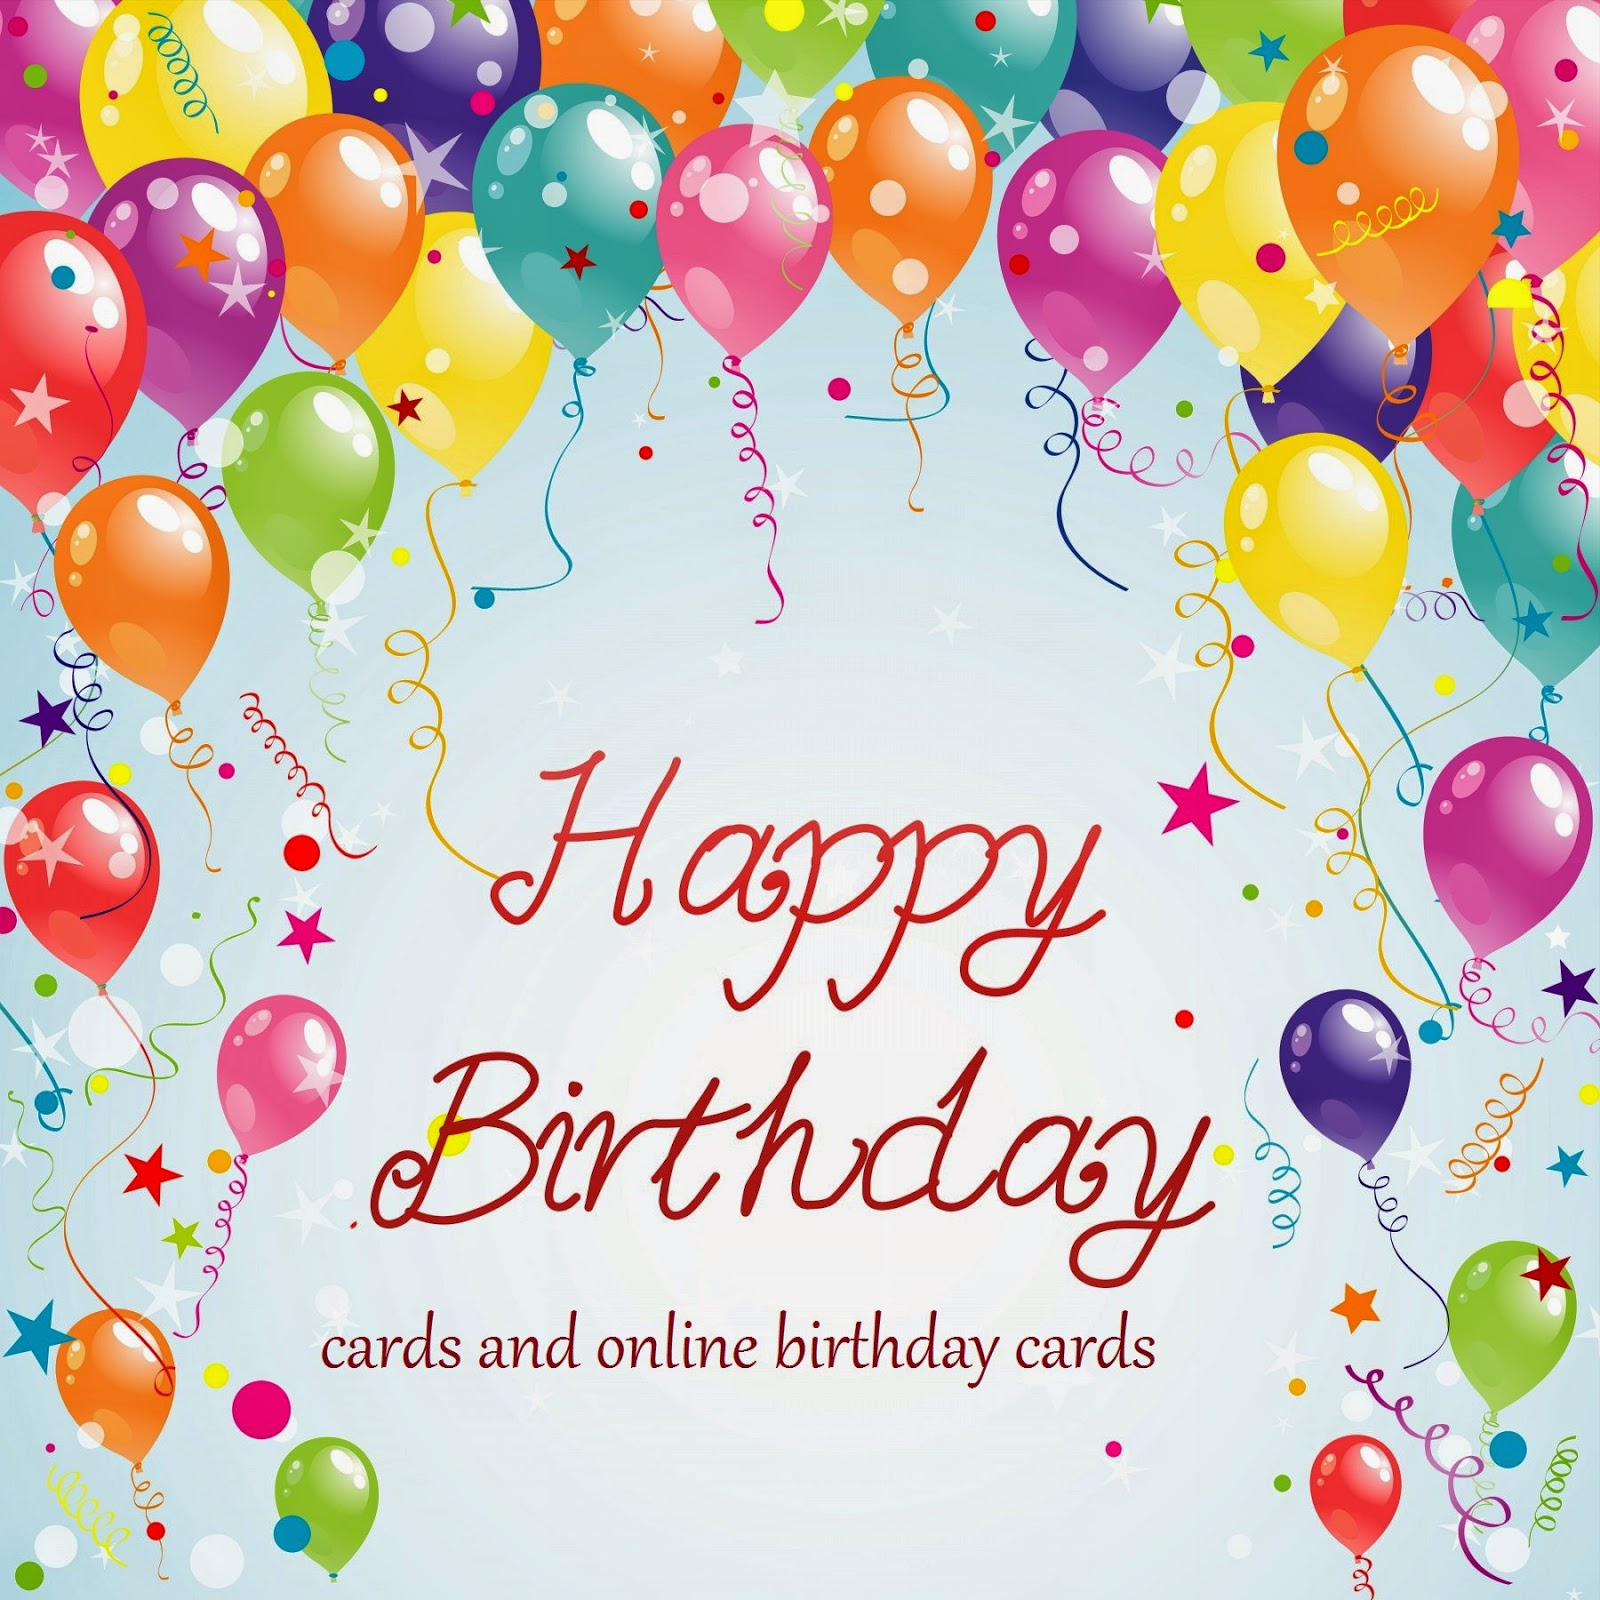 Birthday card on line etamemibawa birthday card on line bookmarktalkfo Images